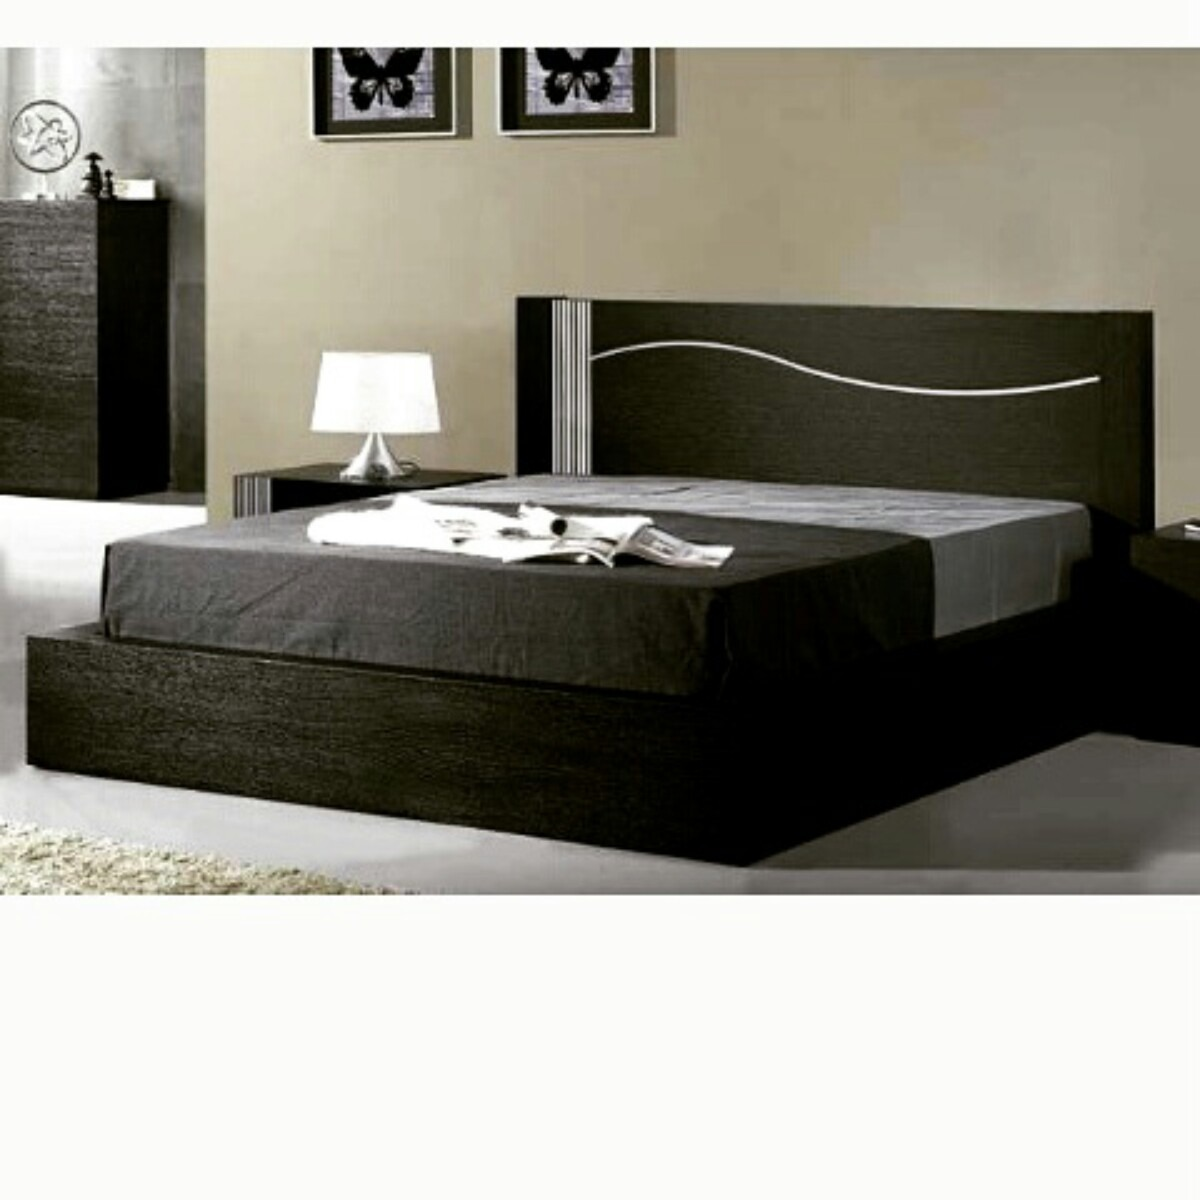 Camas matrimoniales queen y king size bs en for Juego de cuarto queen size